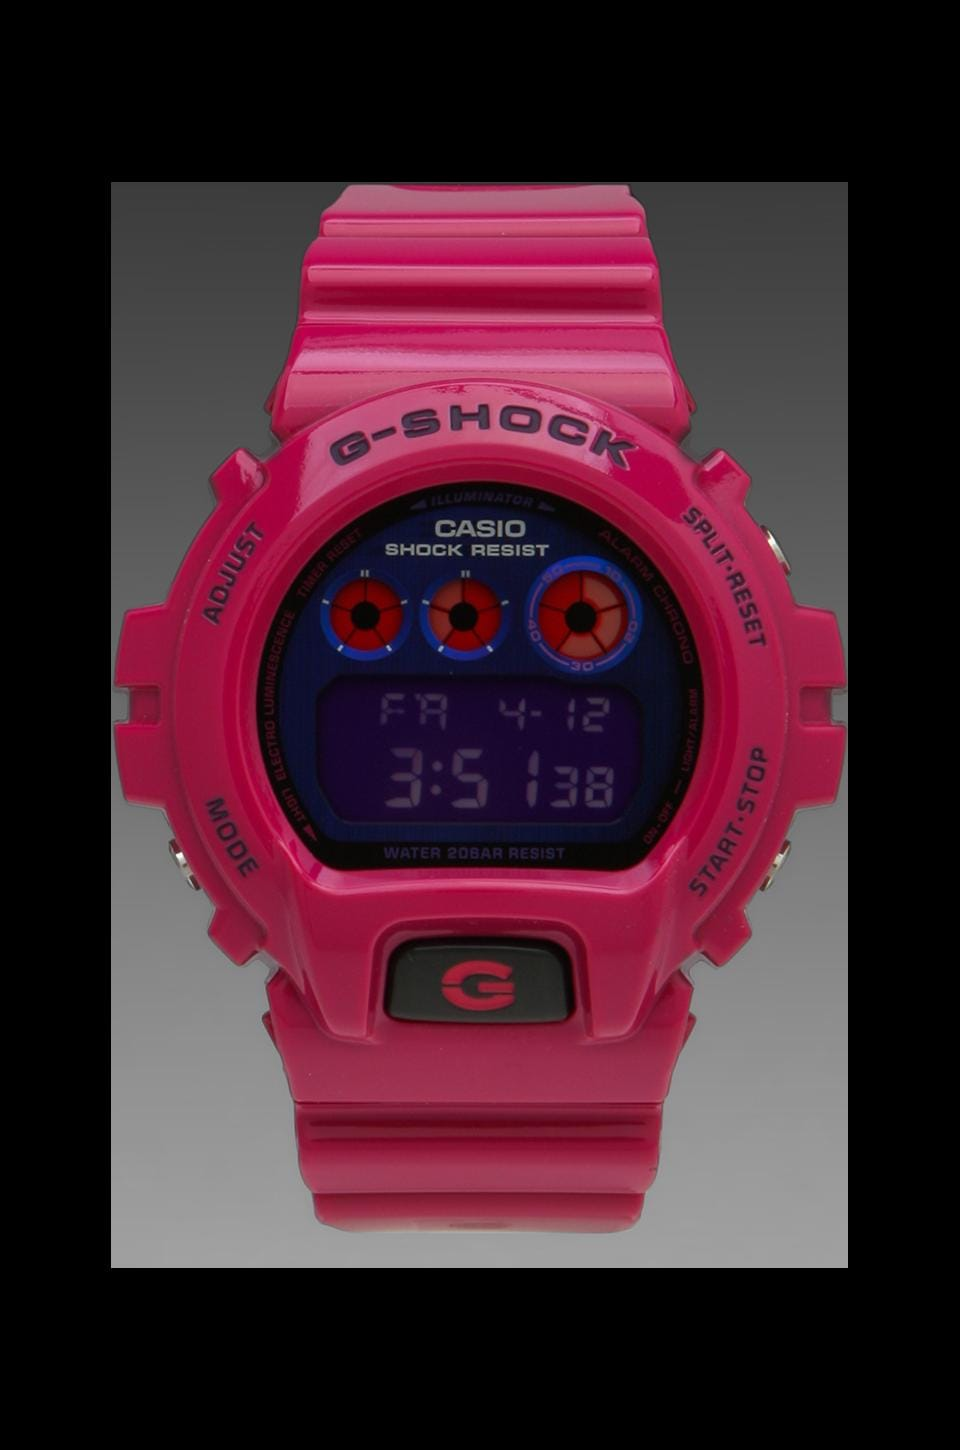 G-Shock Limited Edition DW6900 Polarization Color in Pink